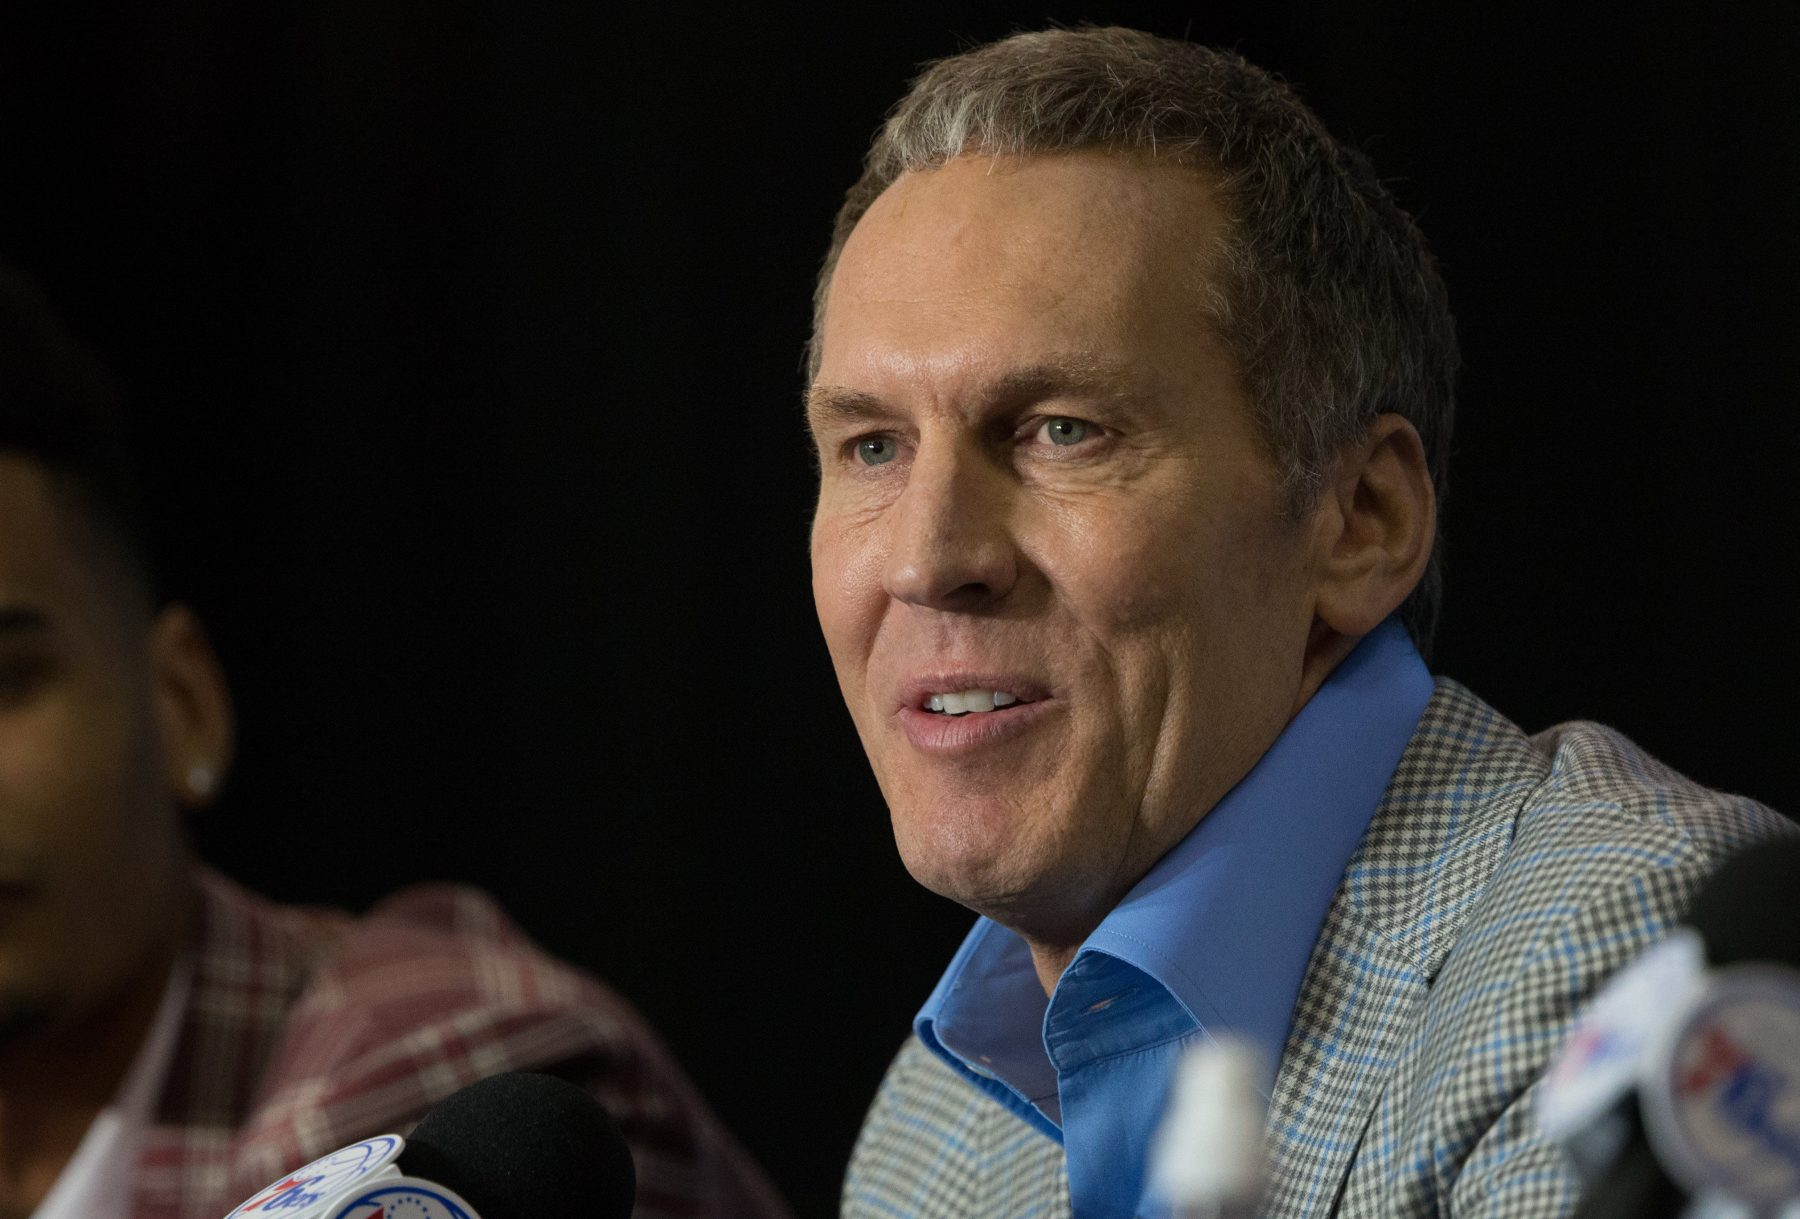 bryan colangelo resigned today - HD1800×1219